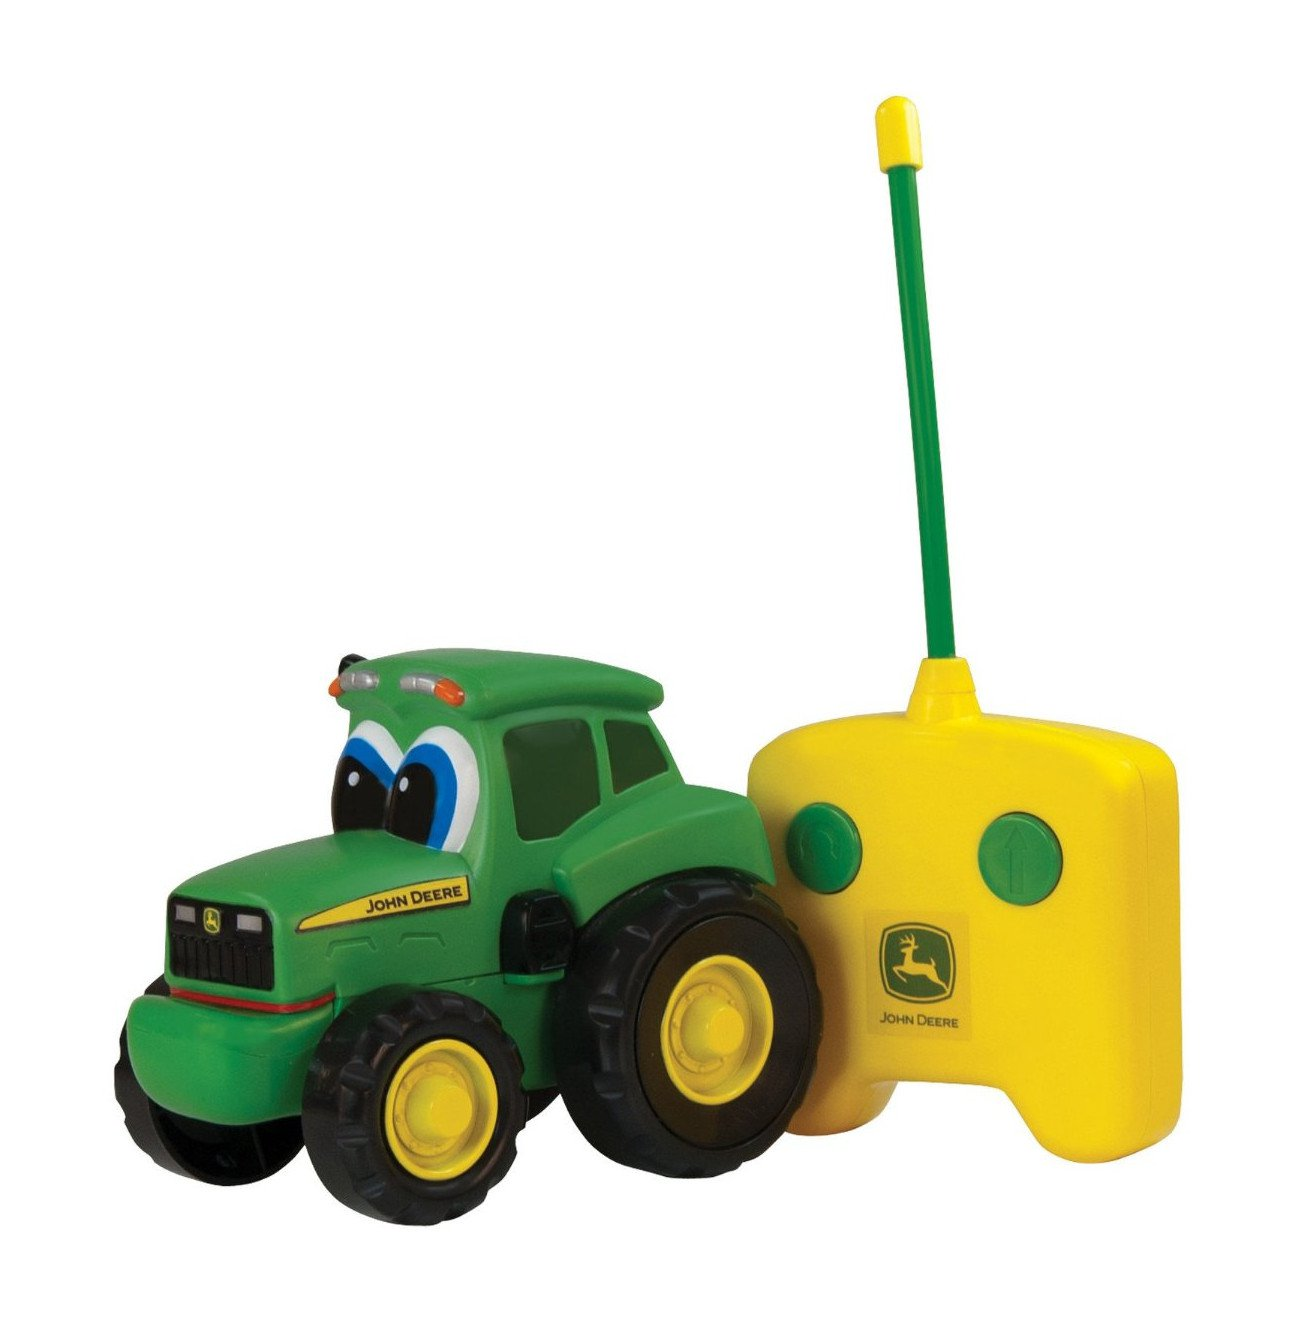 Quelle: Johne Deere - amazon.de